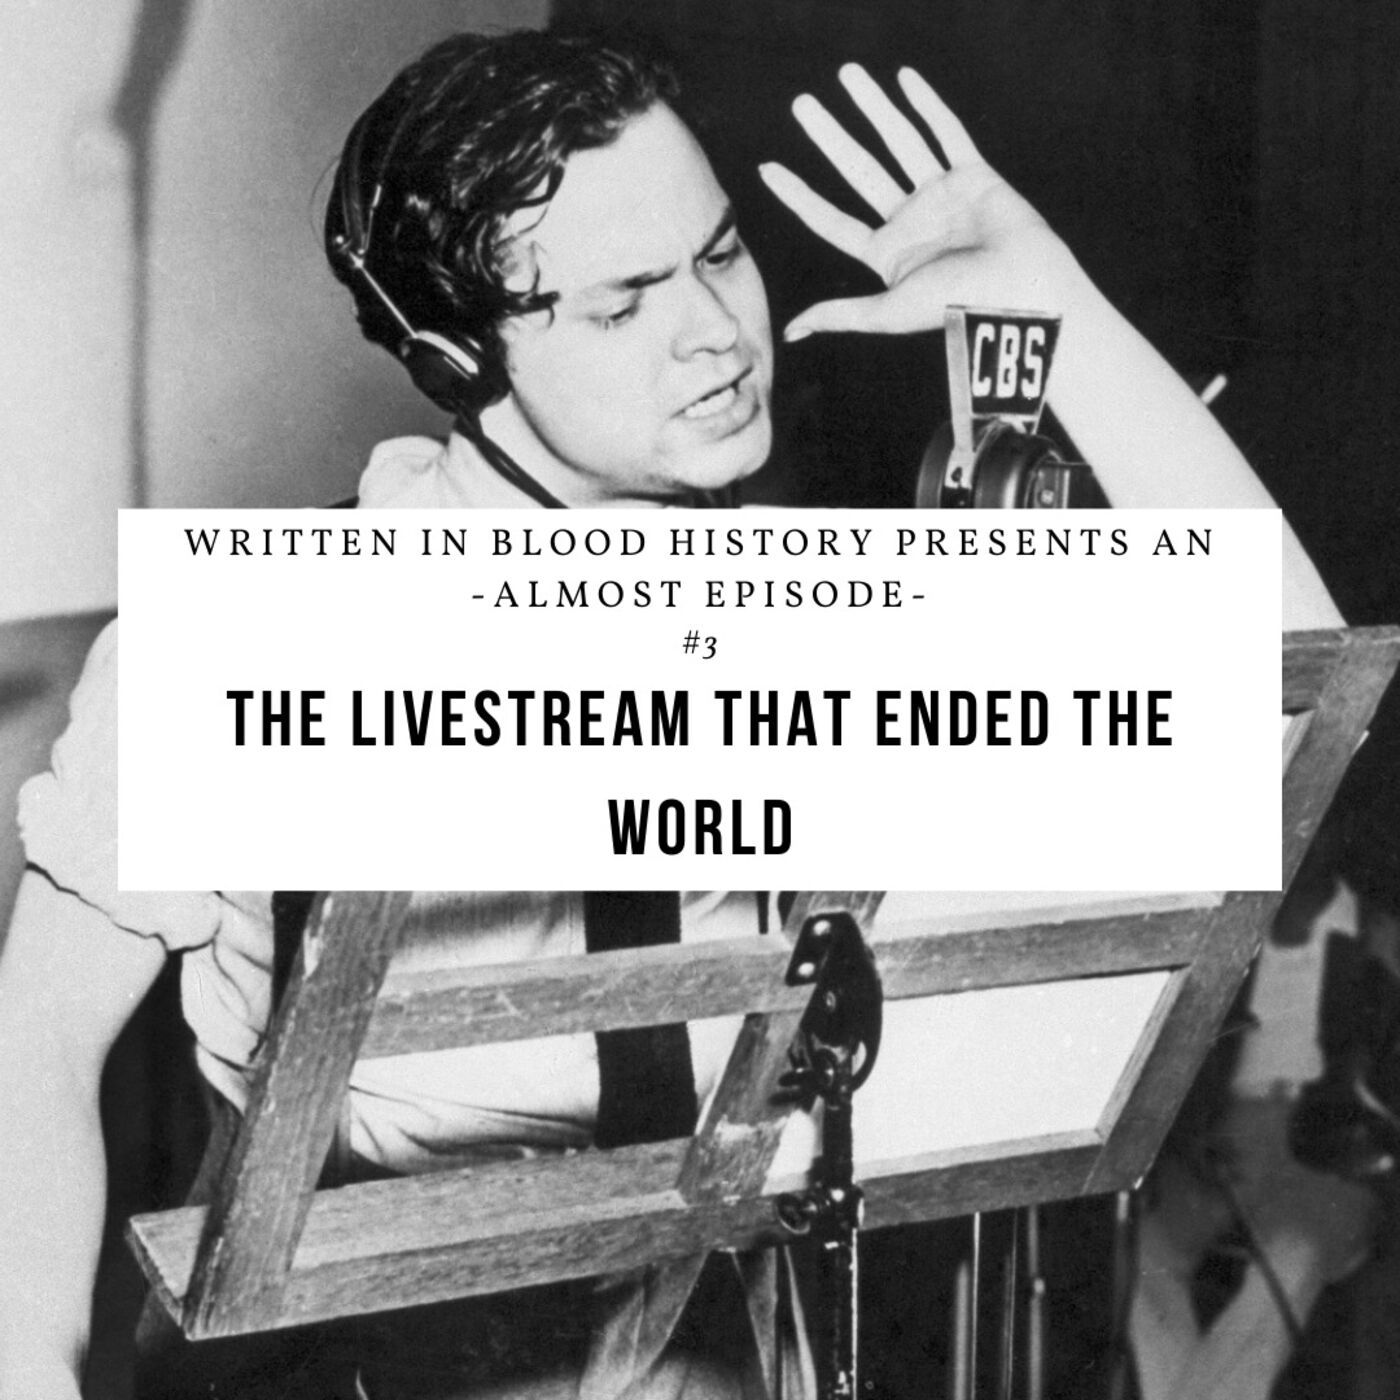 Almost Episode: The Livestream That Ended The World